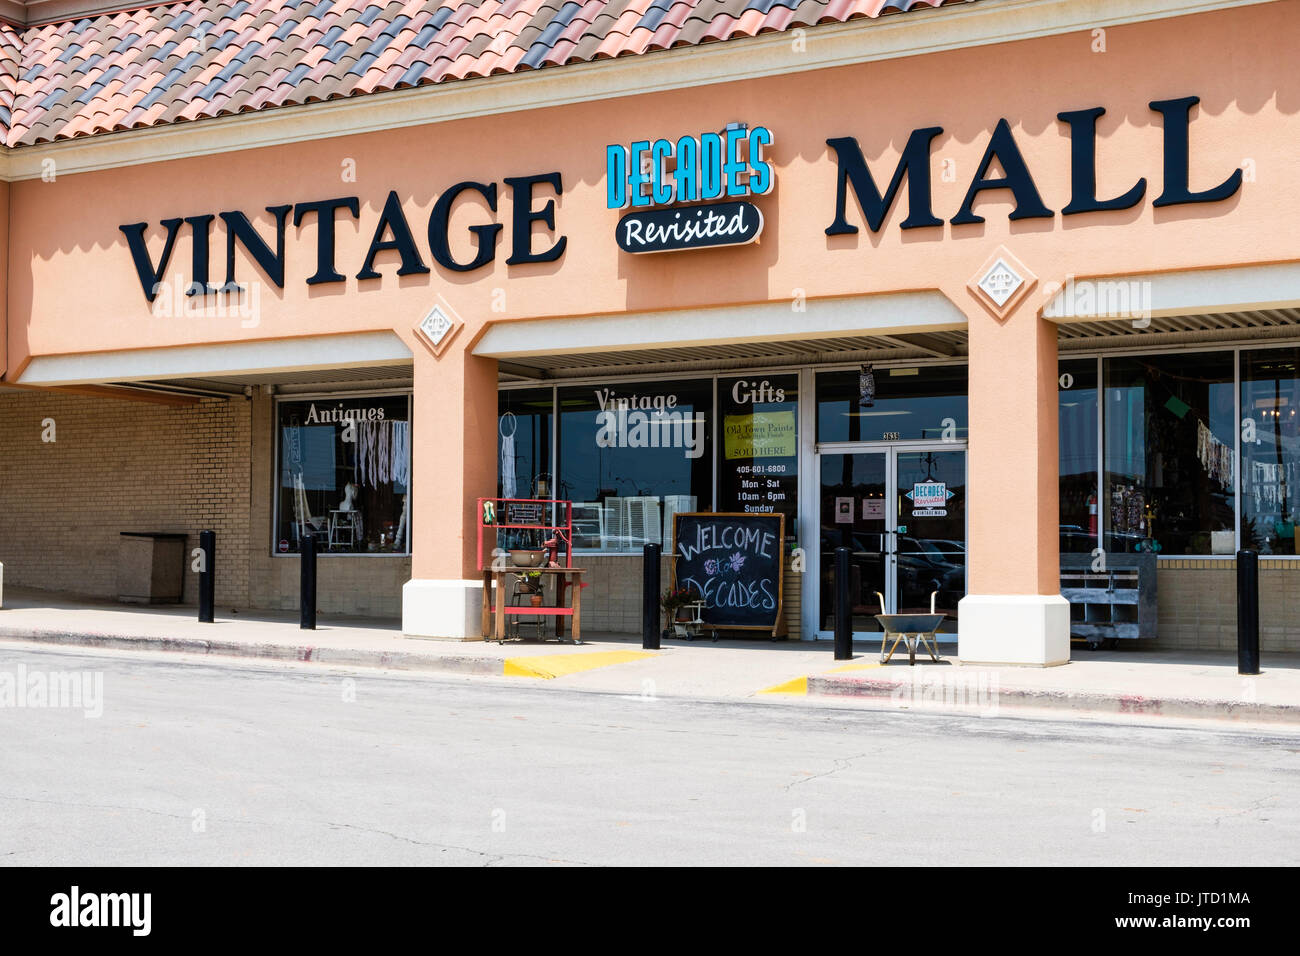 Decade's Vintage Mall, a shop selling vintage or old or antique merchandise in a strip mall in Oklahoma City, Oklahoma, USA. - Stock Image